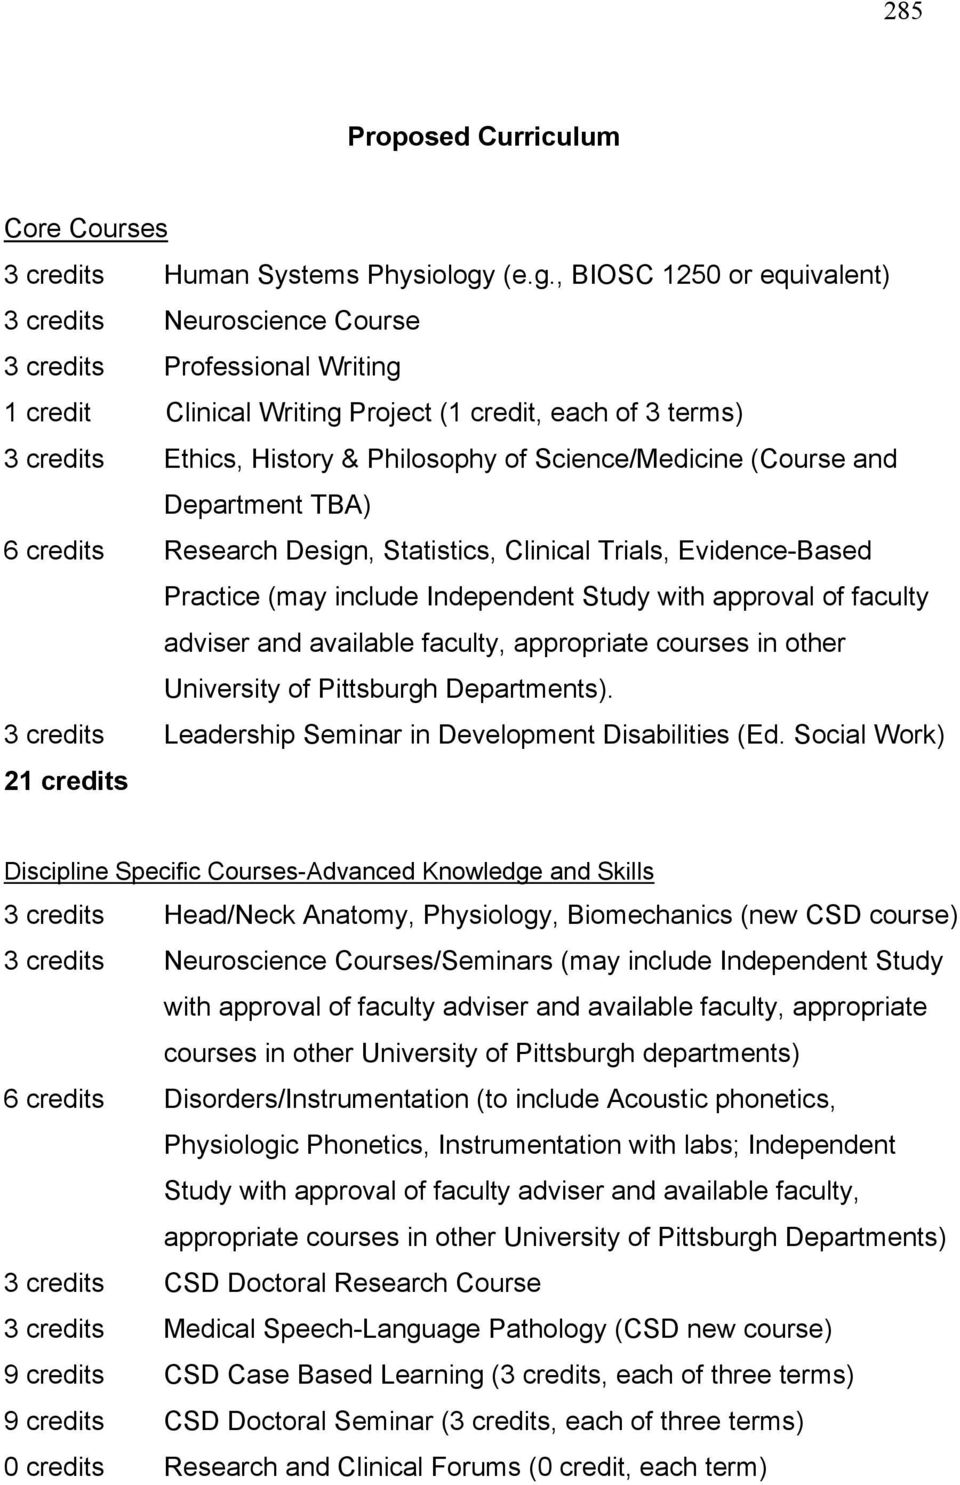 Science/Medicine (Course and Department TBA) 6 credits Research Design, Statistics, Clinical Trials, Evidence-Based Practice (may include Independent Study with approval of faculty adviser and